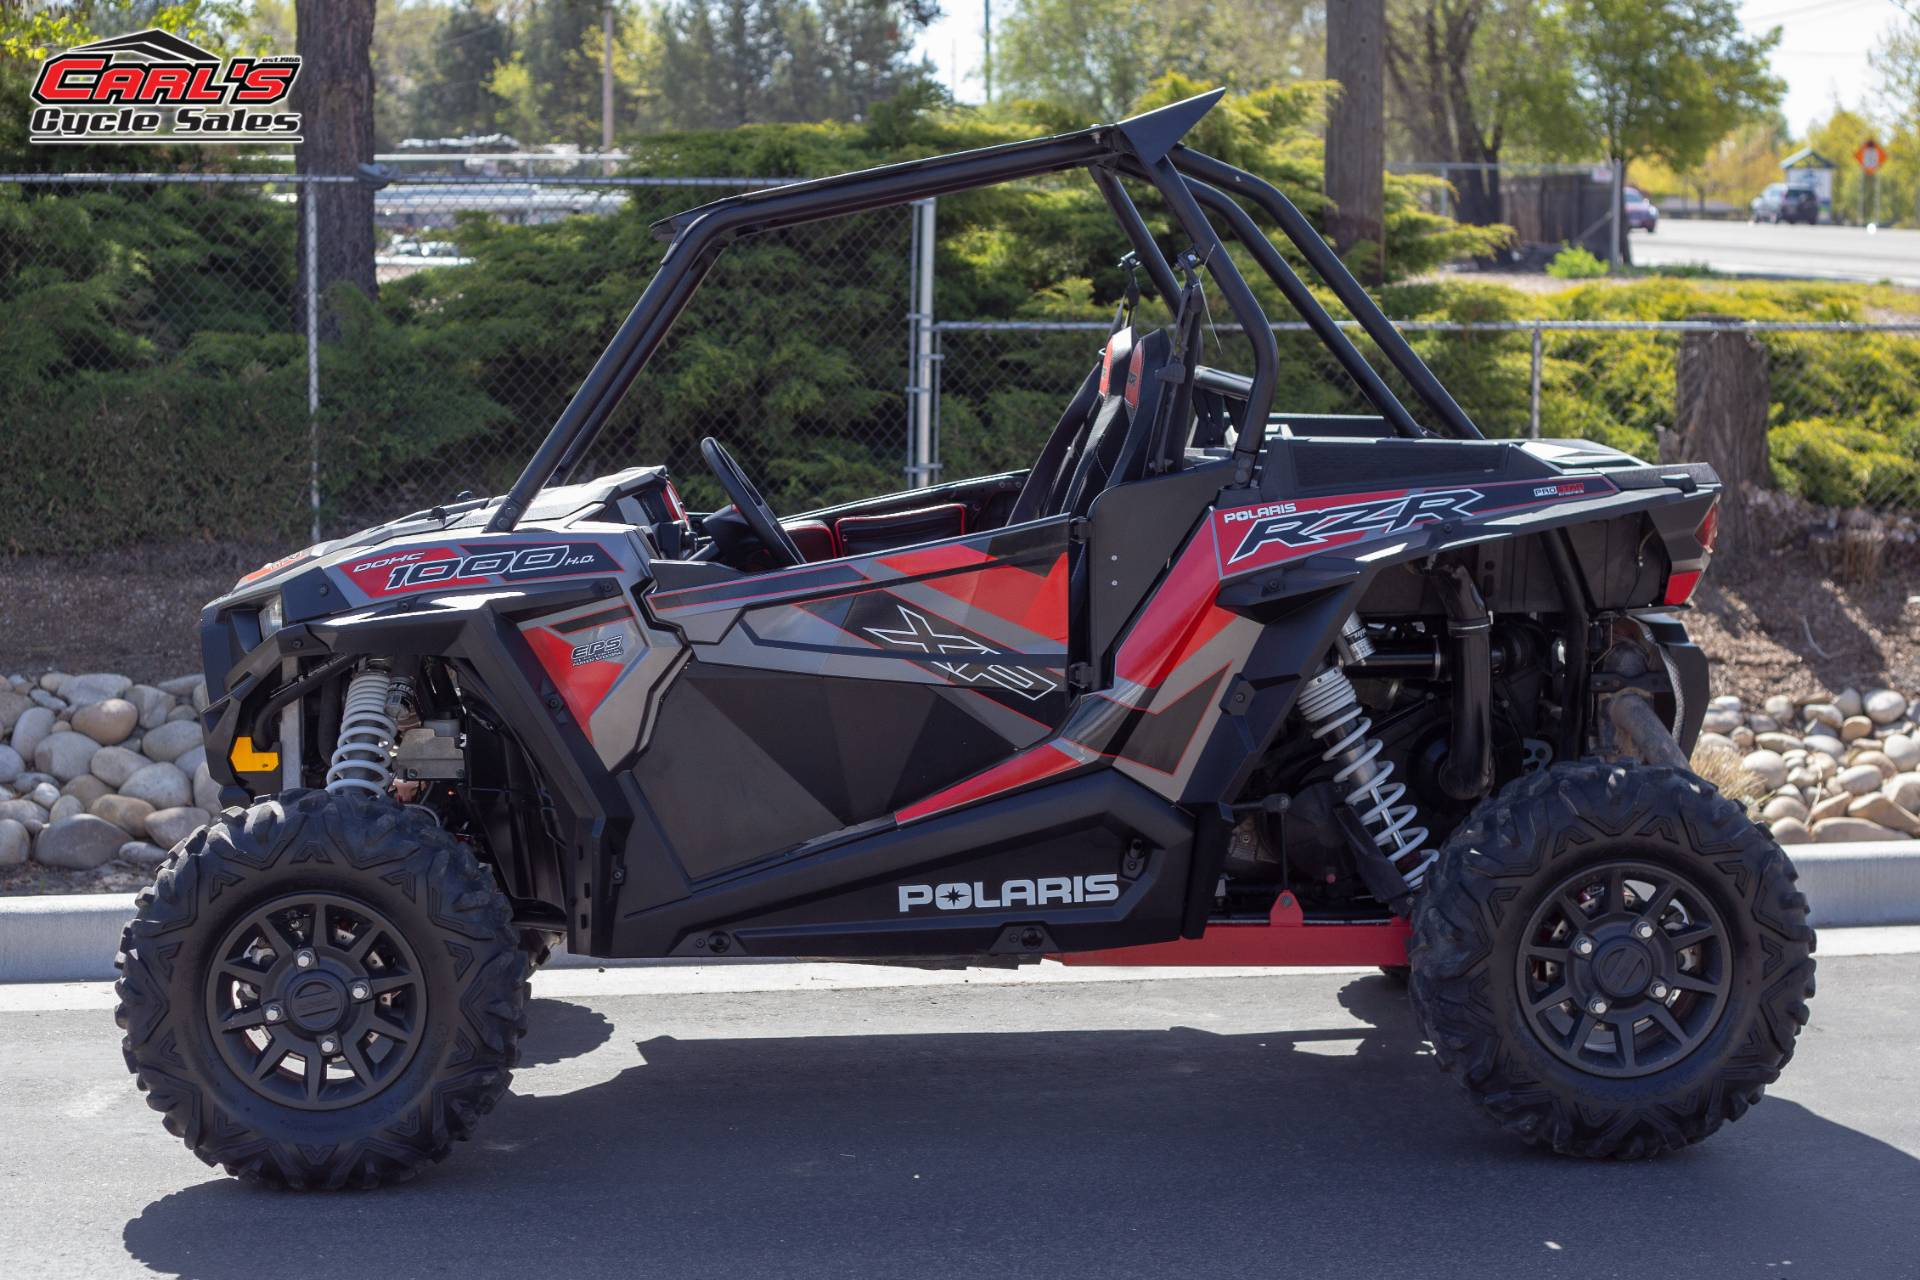 2017 Polaris RZR XP 1000 EPS in Boise, Idaho - Photo 2